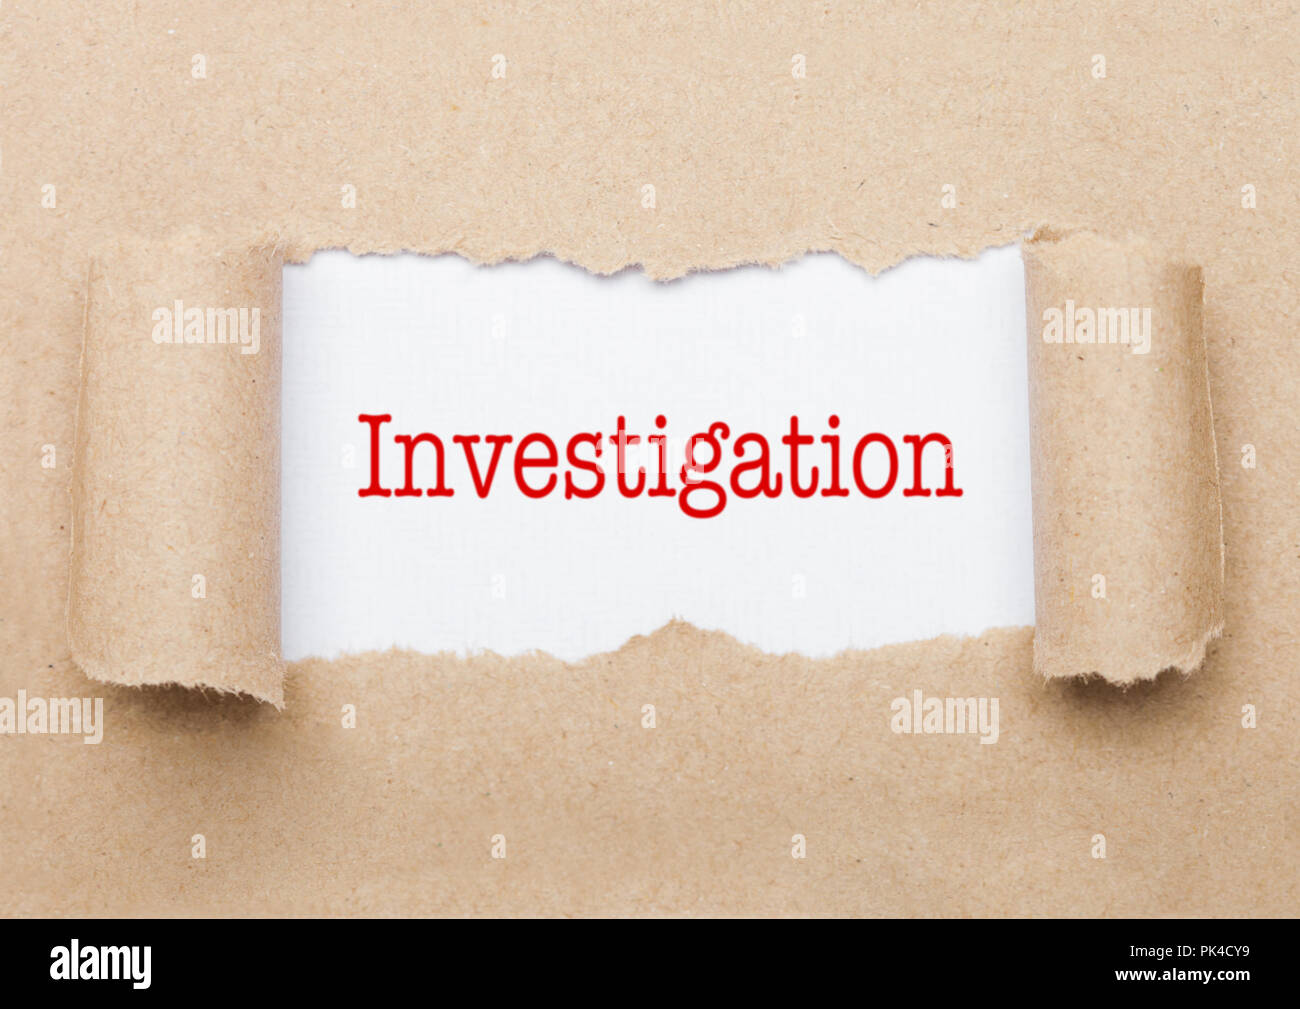 Investigation concept text appearing behind torn brown paper envelope Stock Photo